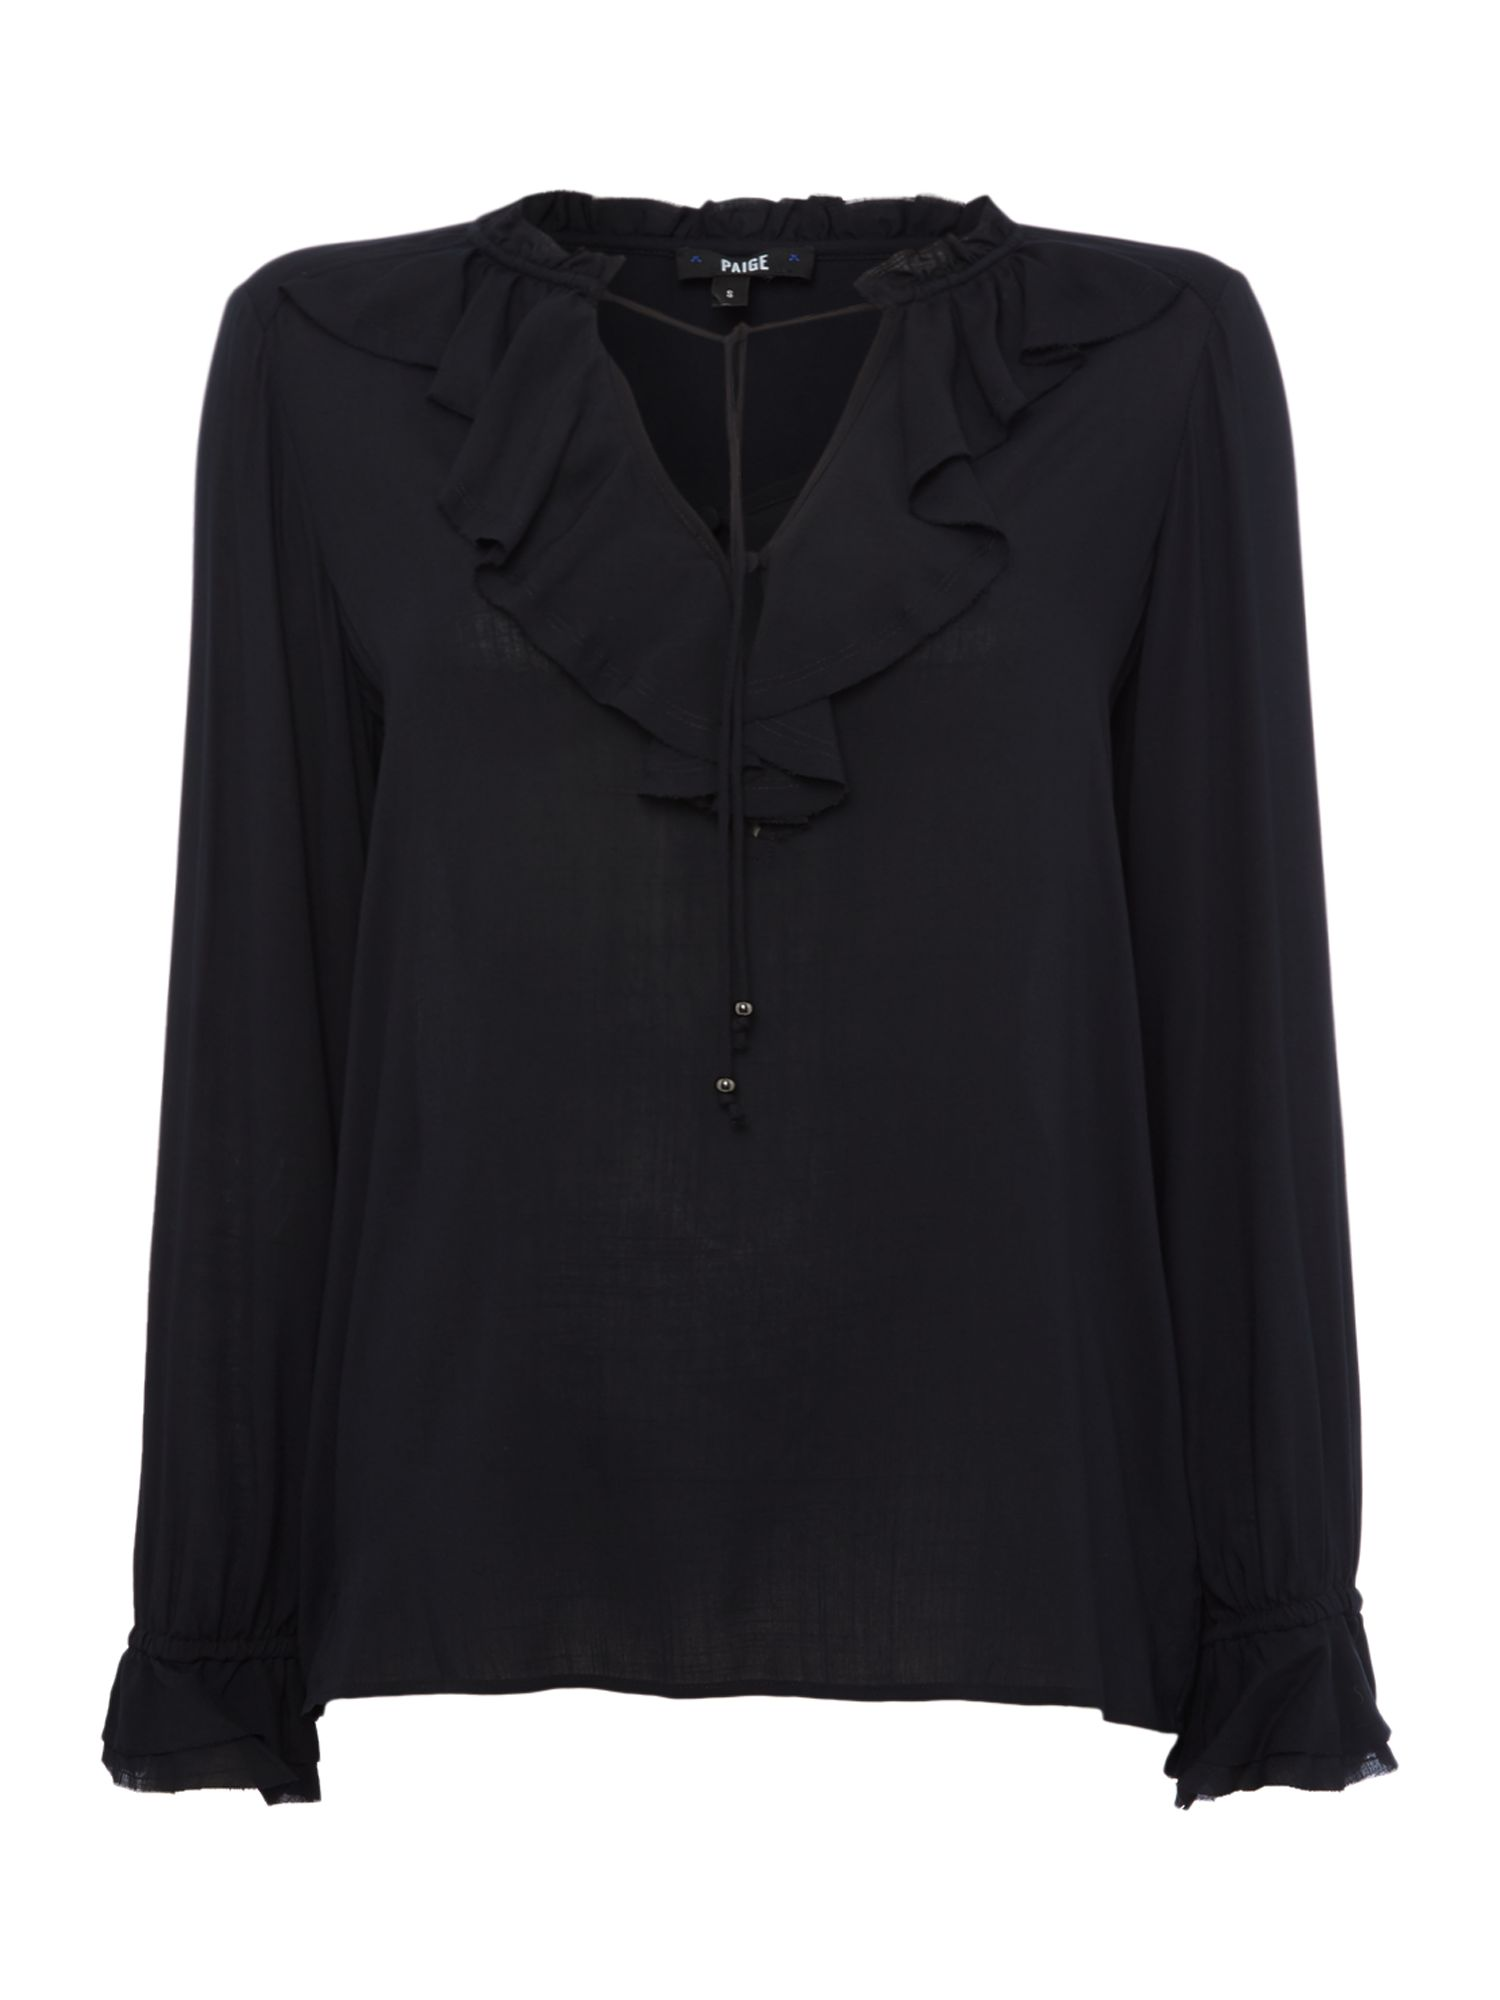 Fauna Blouse, Black